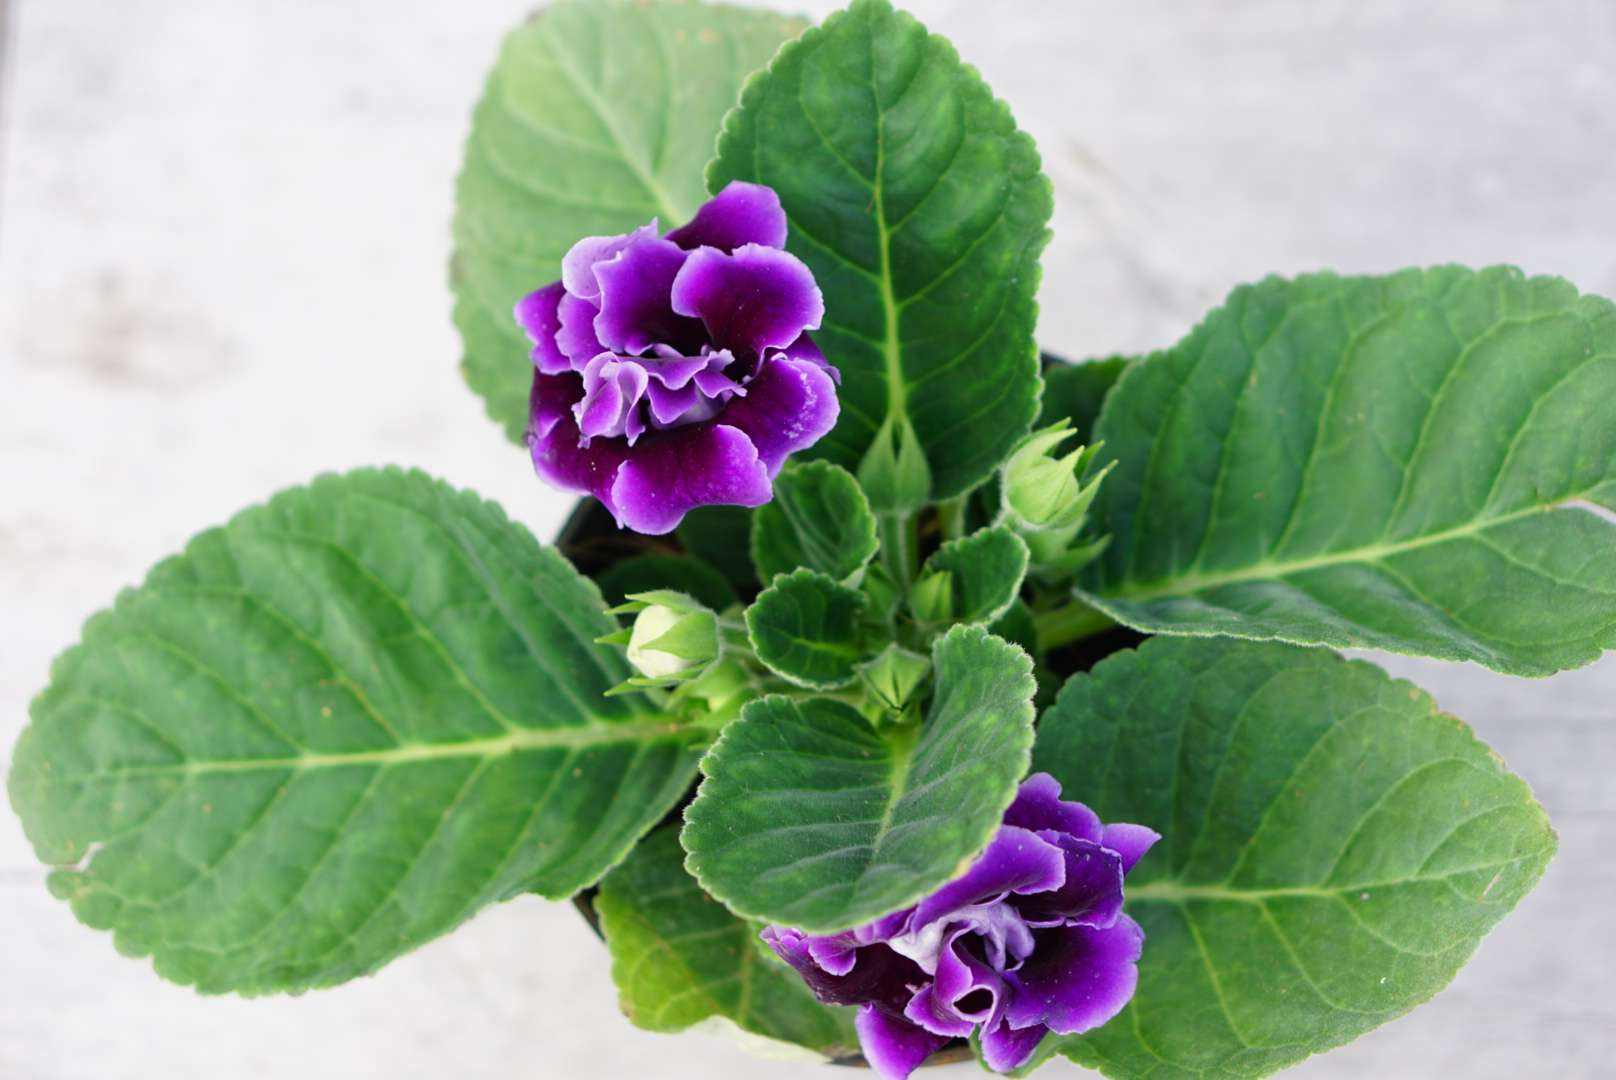 Gloxinia senningia hybrid plant with purple flowers and buds from above